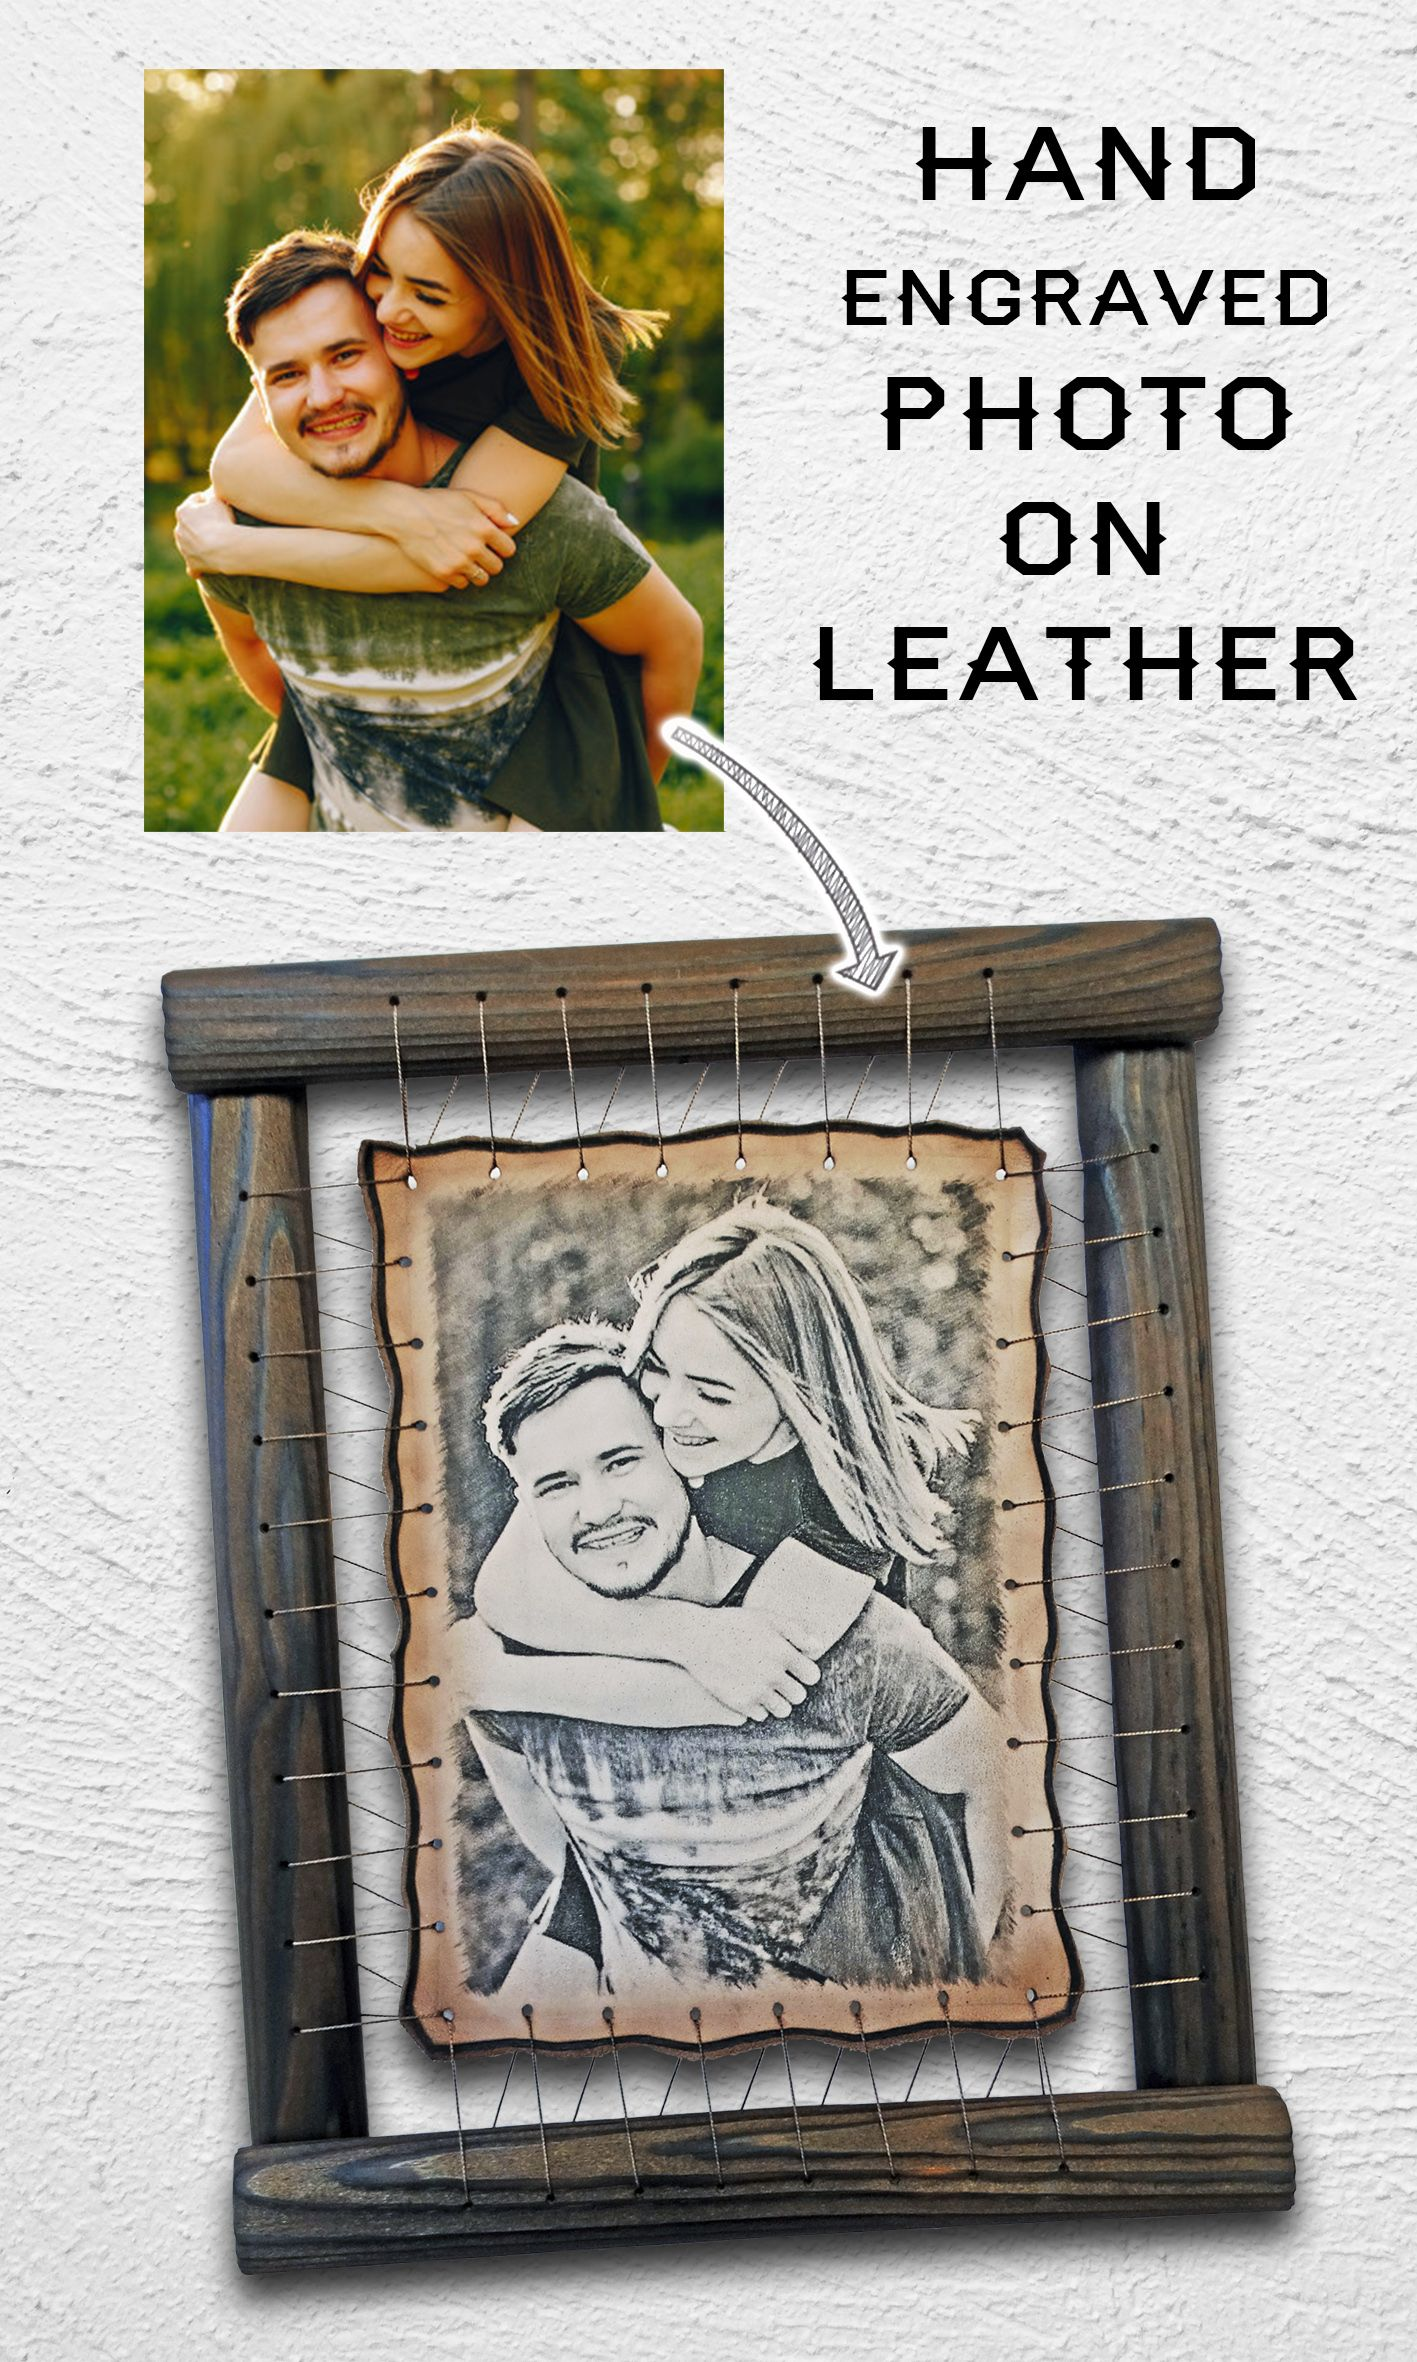 Personalized Your Photo on Leather 3rd anniversary gift